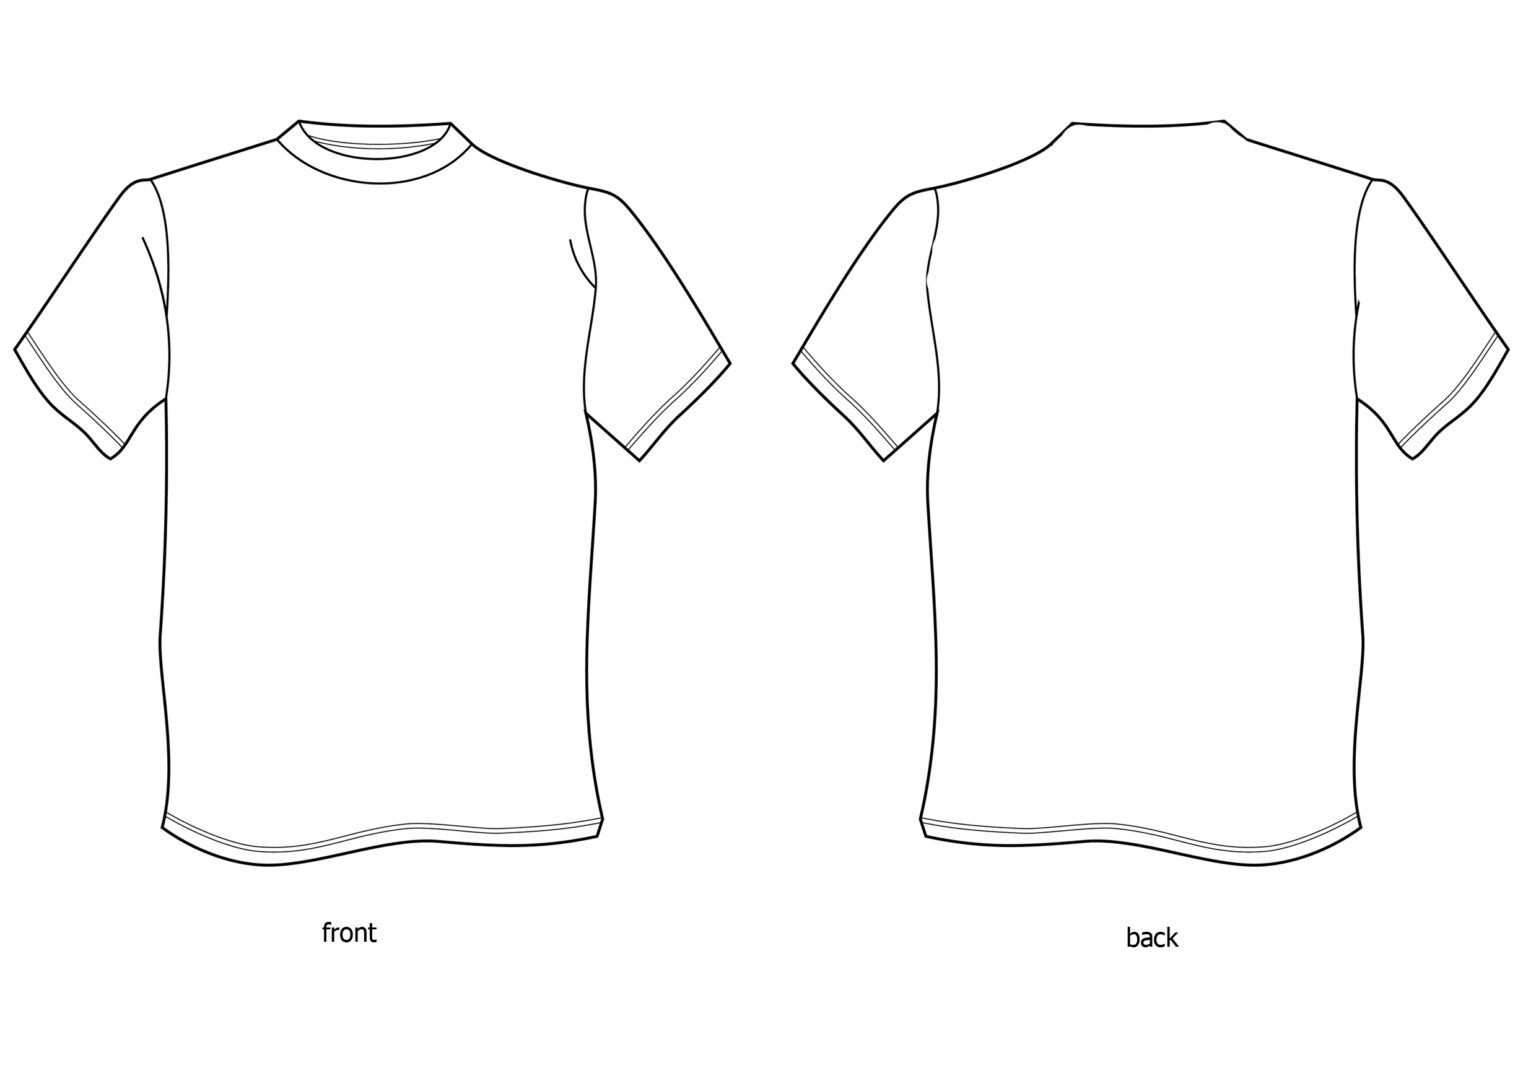 Download Free T Shirt Design Template Download Free Clip Art Free Pertaining To Blank T Shirt Design Templ T Shirt Design Template Free T Shirt Design Tshirt Template